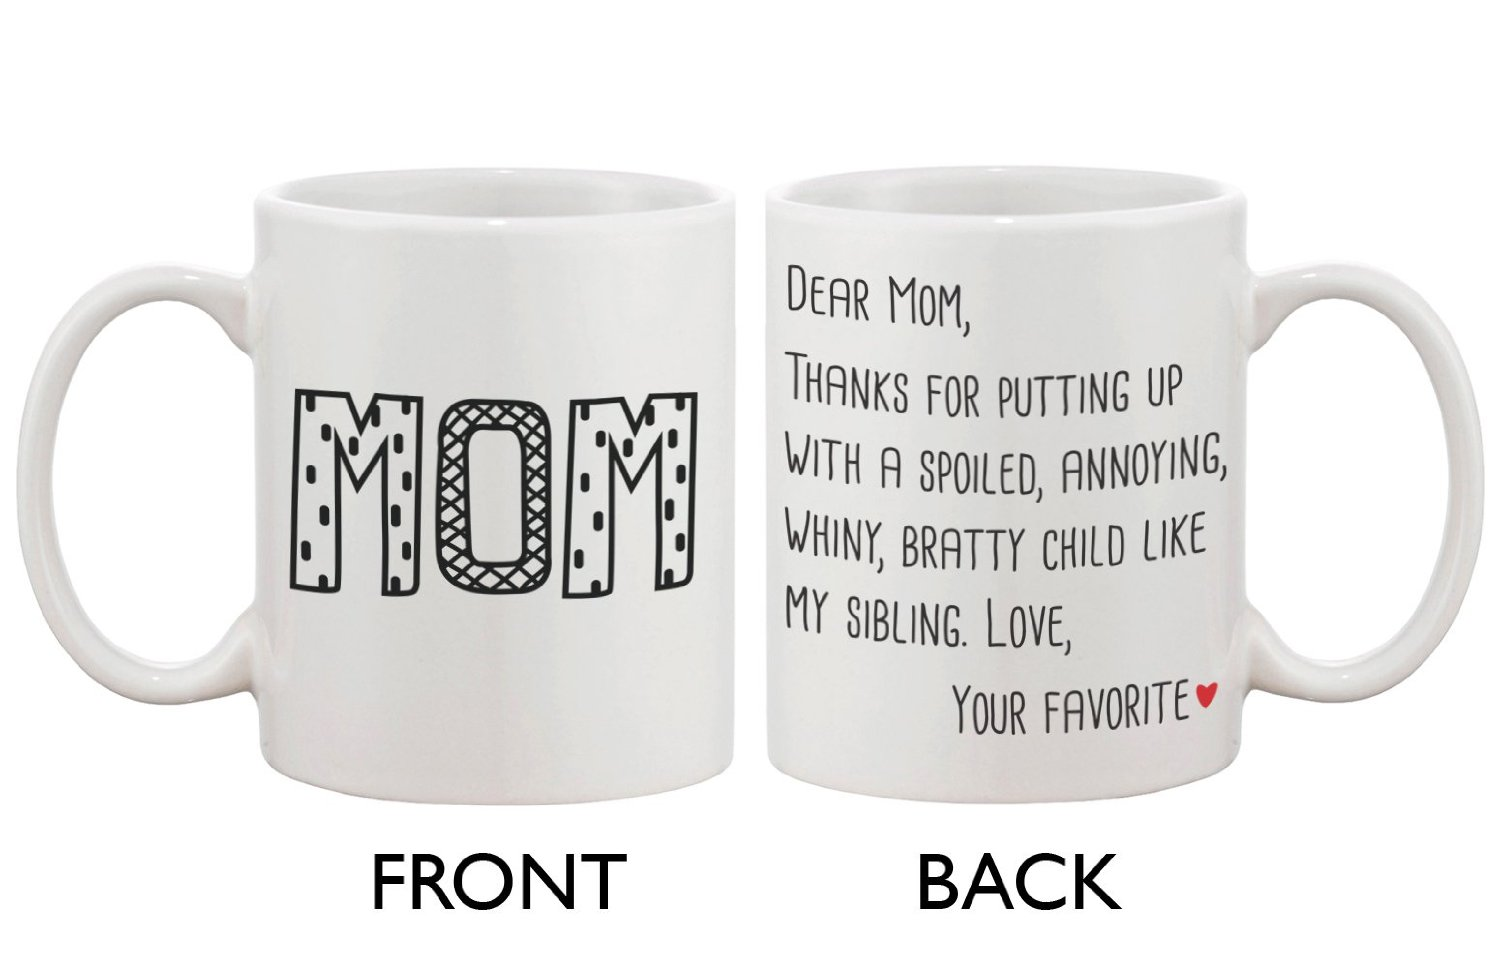 Amazon.com: Cute Ceramic Coffee Mug for Mom - Dear Mom ...